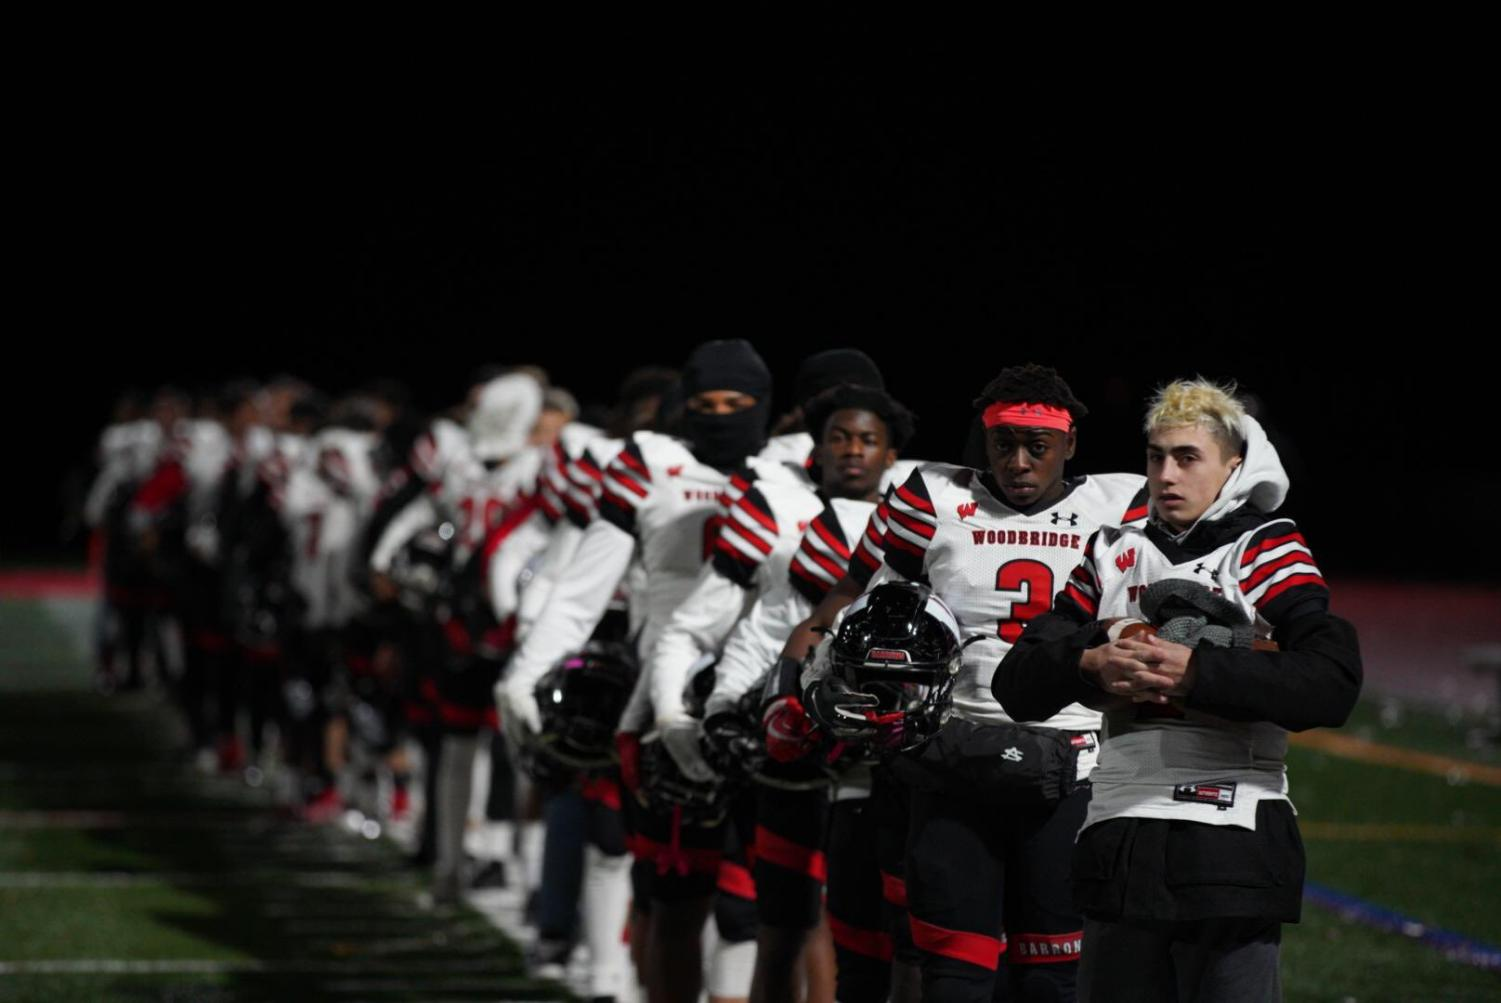 The Barrons lost against Northern Highlands with a  score of 37-7. The Barrons were lined up getting ready to play against Northern Highlands.